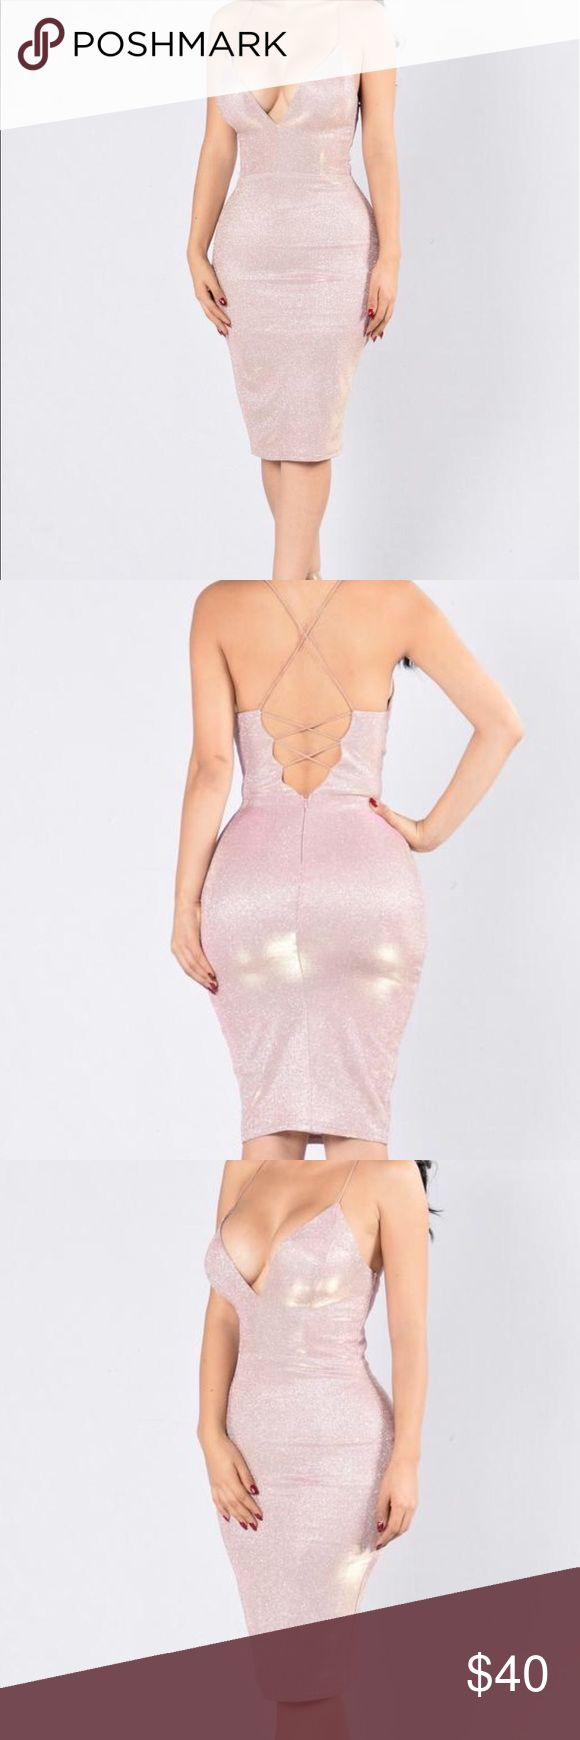 Rose Pink Midi Bodycon dress The dress is shimmery and is a beautiful rose gold bodycon dress that hugs your hips Dresses Midi